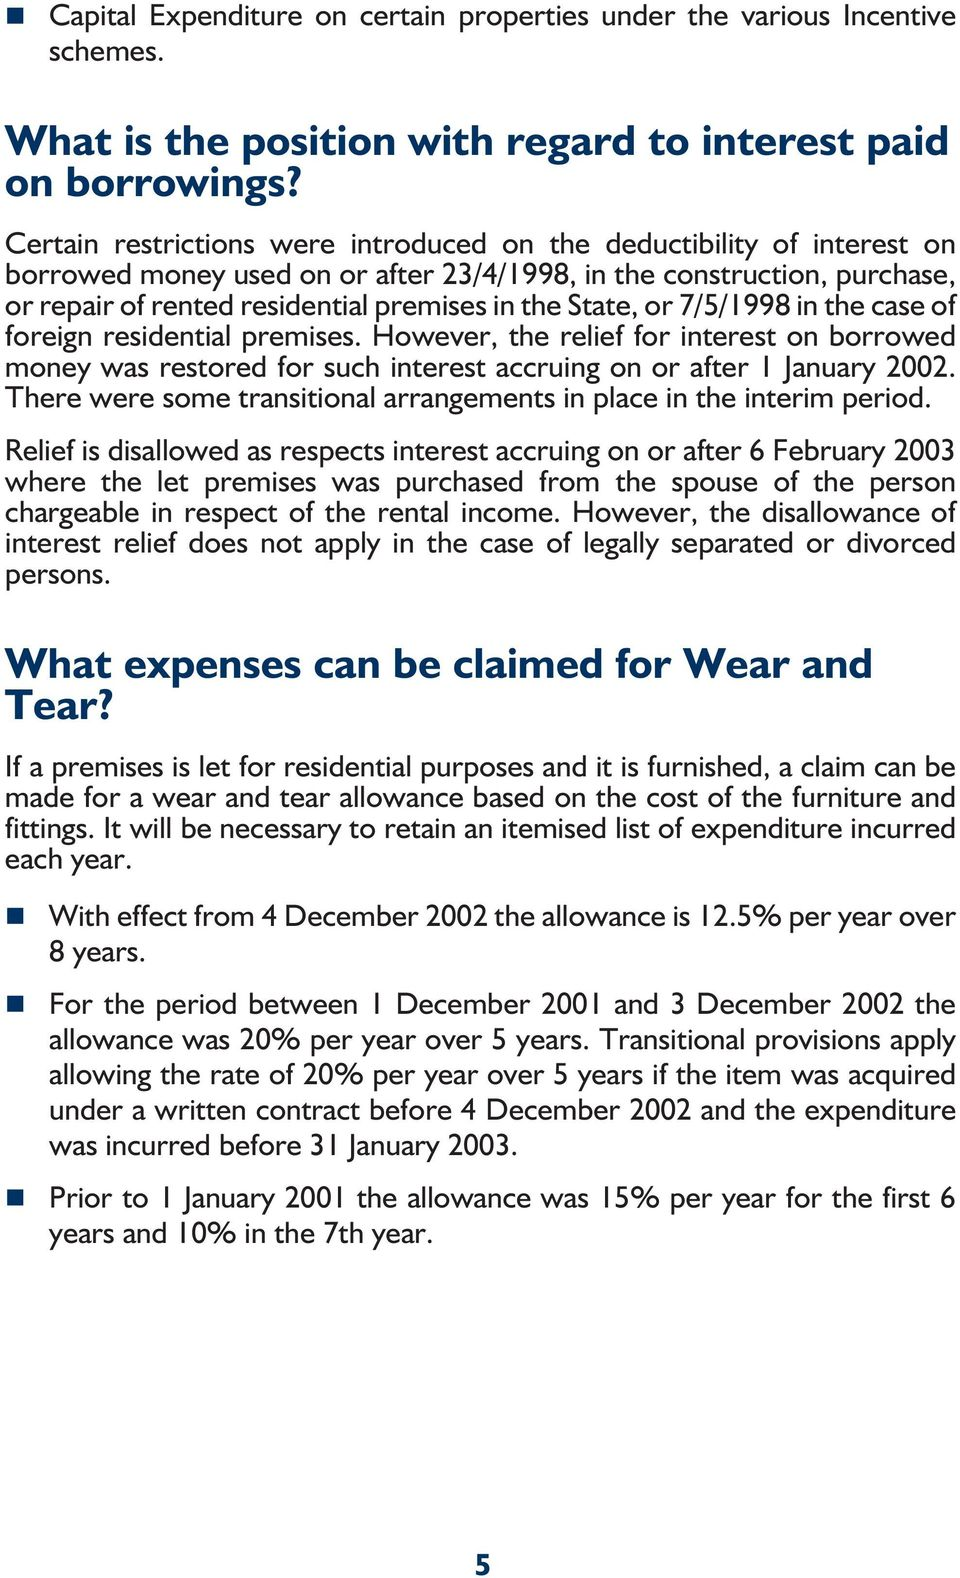 State, or 7/5/1998 in the case of foreign residential premises. However, the relief for interest on borrowed money was restored for such interest accruing on or after 1 January 2002.